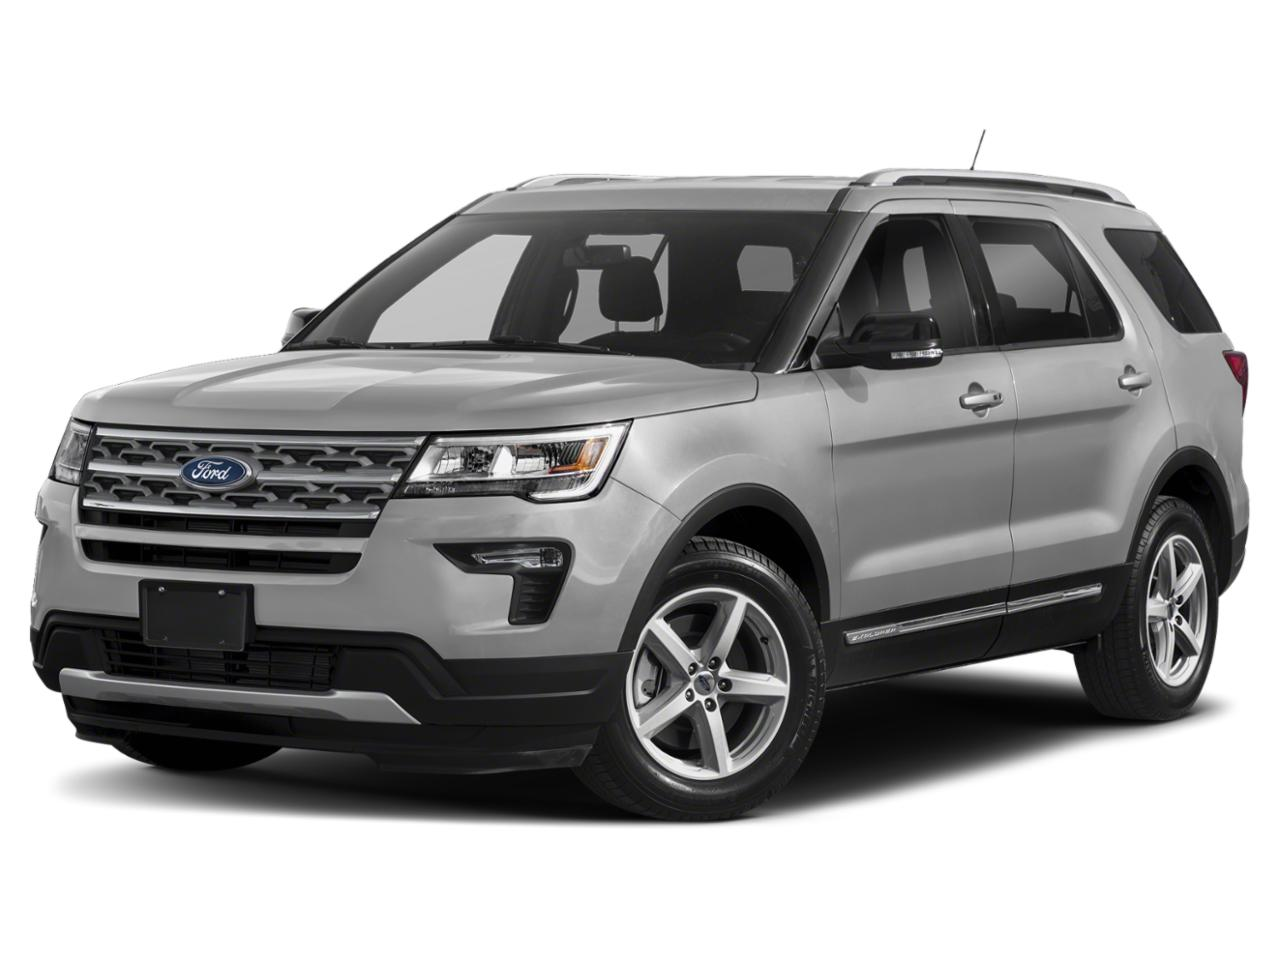 2018 Ford Explorer Vehicle Photo in Safford, AZ 85546